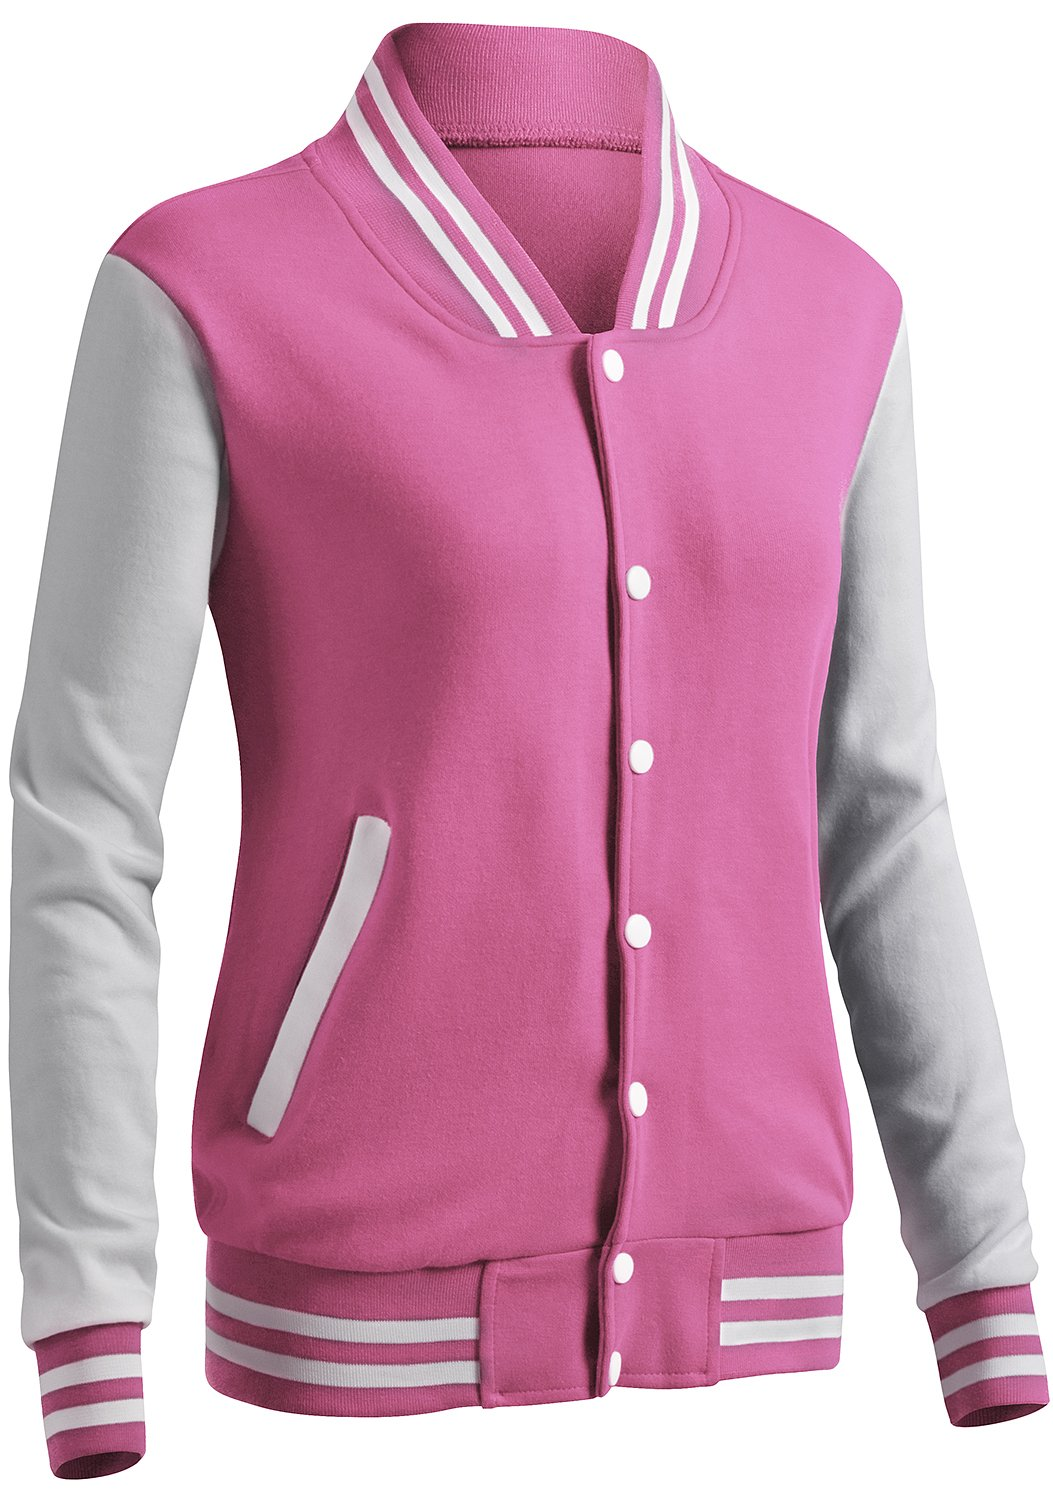 CLOVERY Women's Varsity Style Long Sleeve Button Jacket Pink M